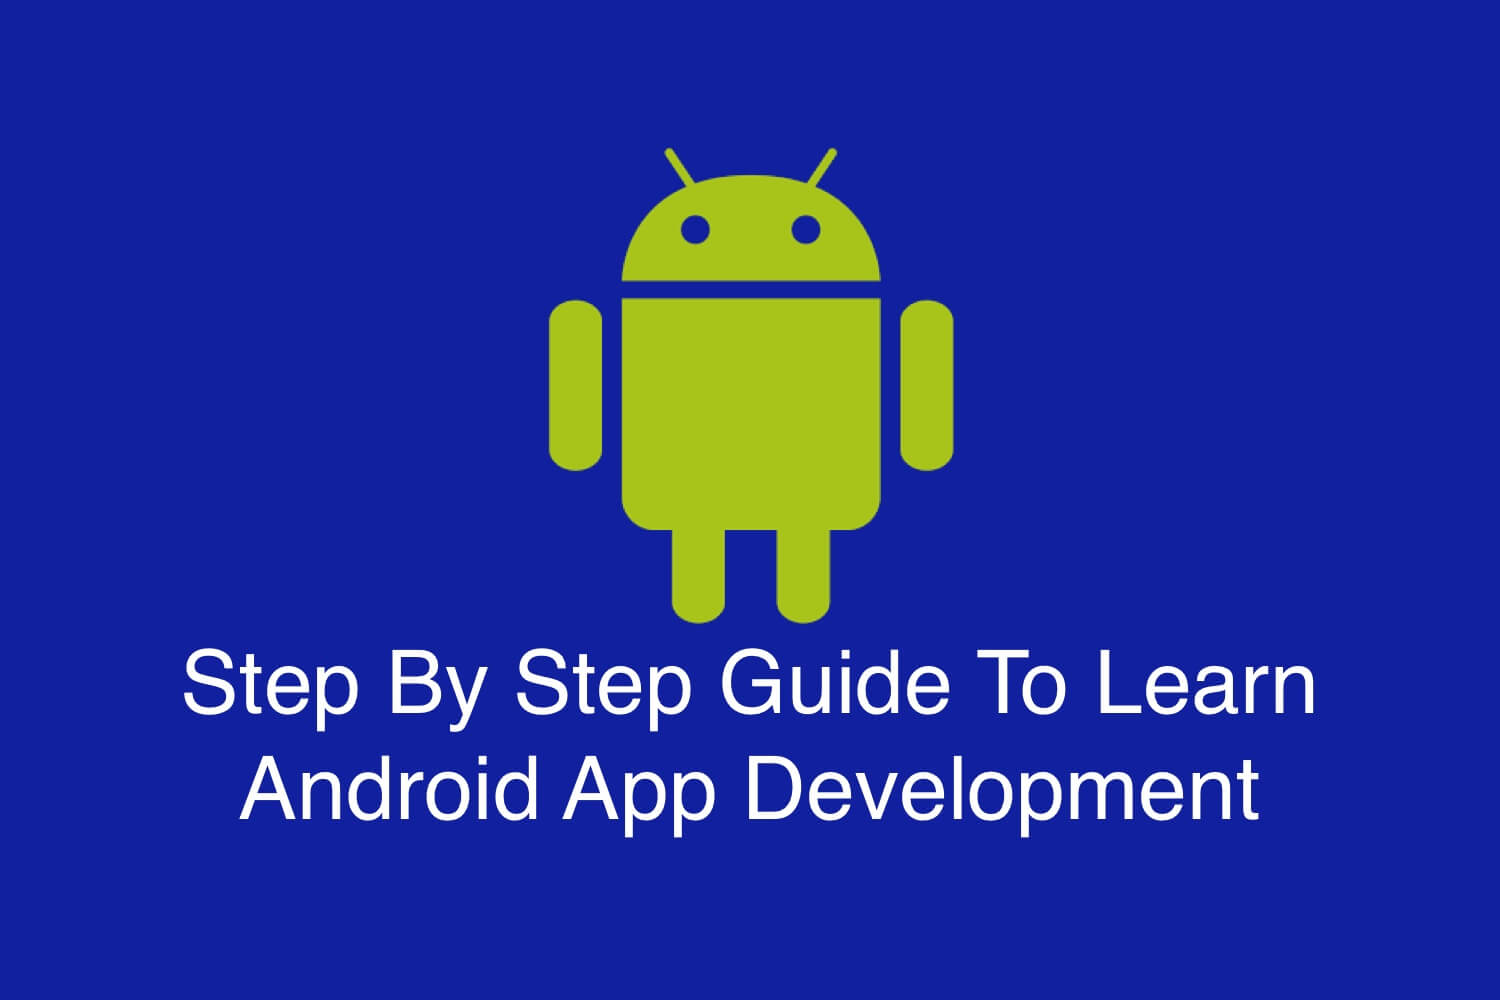 Step By Step Guide To Learn Android App Development